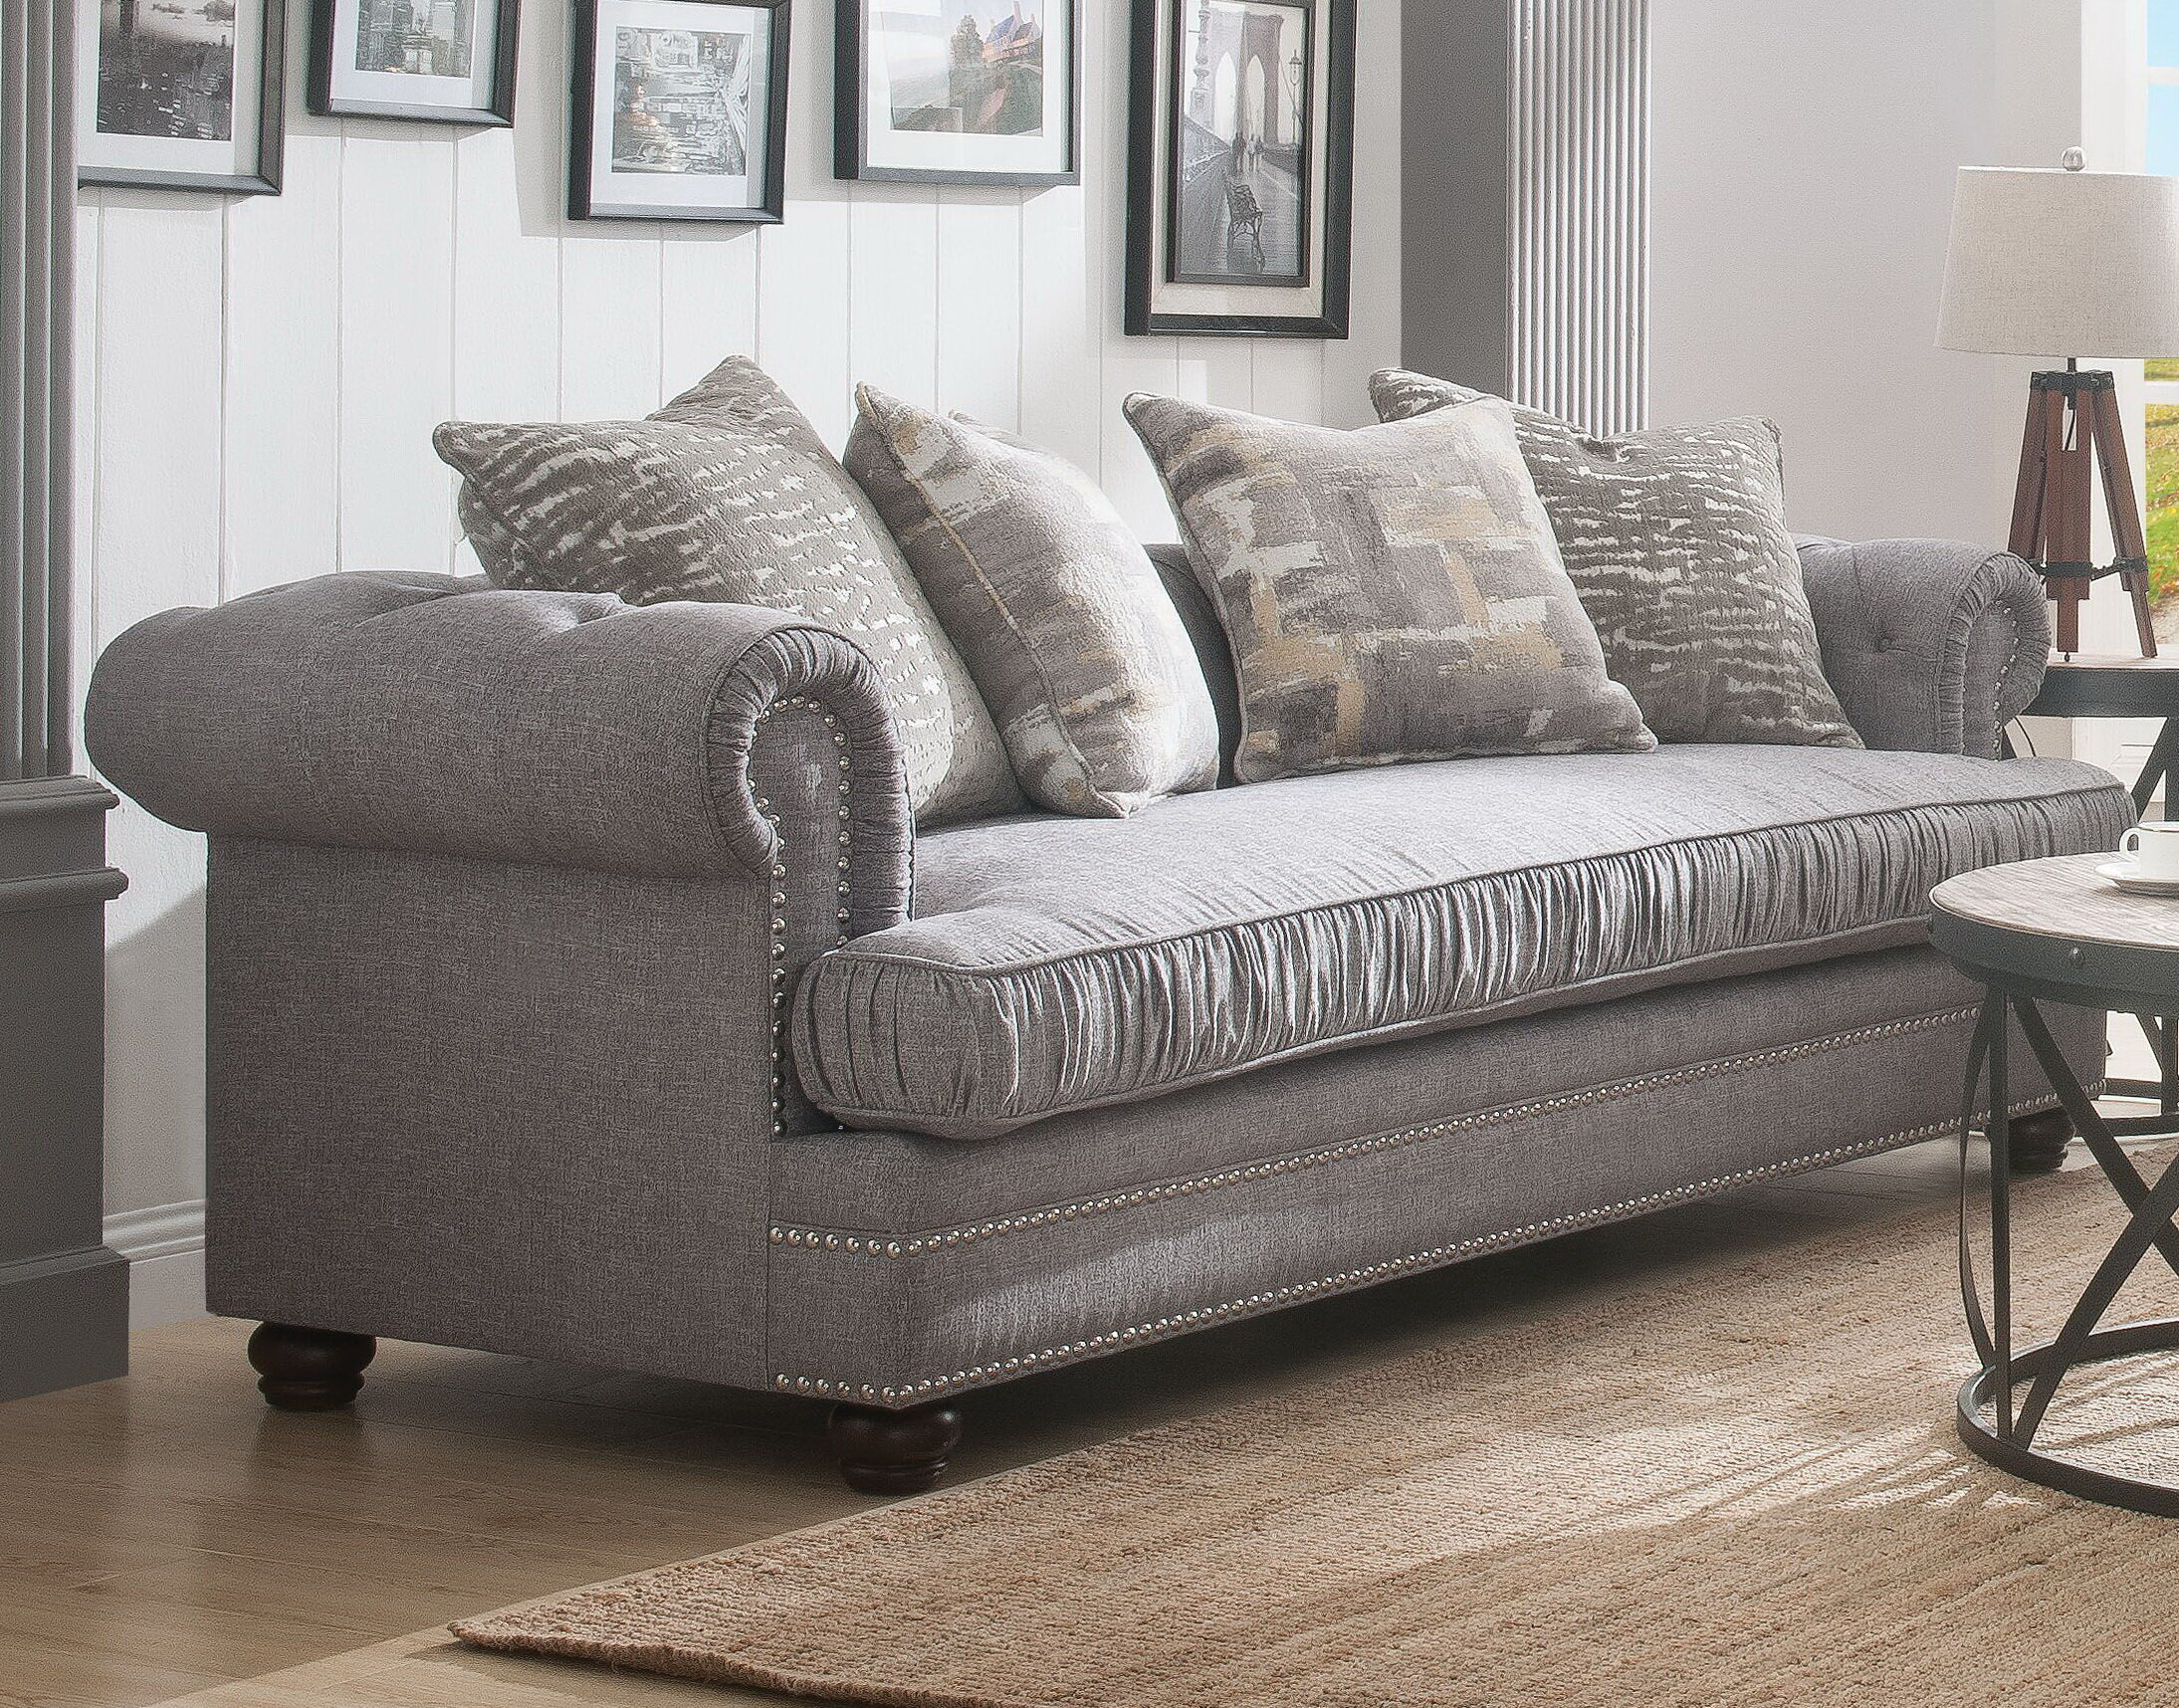 Warwick Sofa The Es Chesterfield 2 Seat Warwick Plush